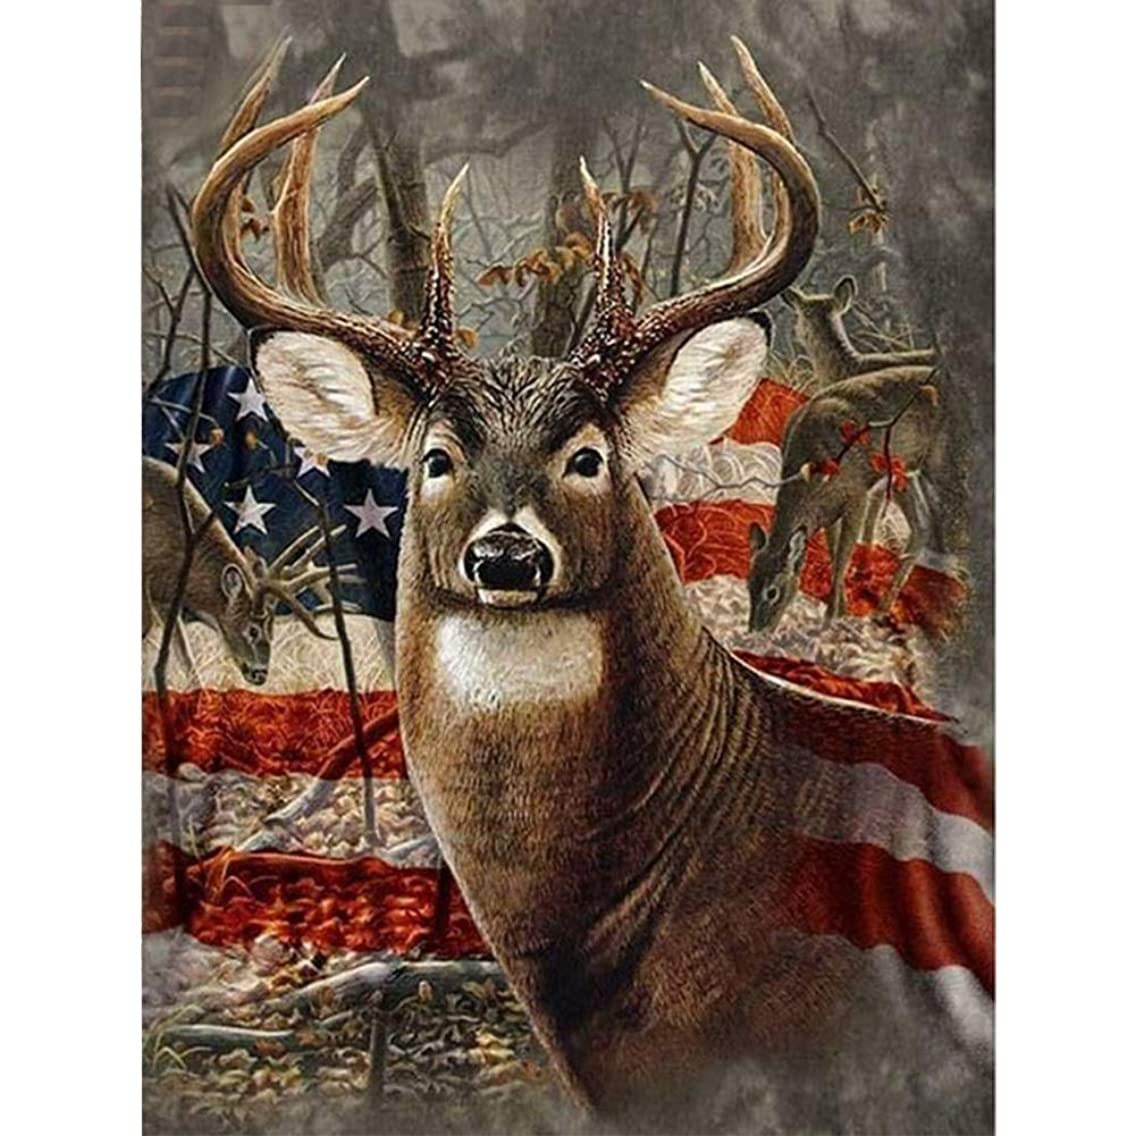 UPMALL DIY 5D Diamond Painting by Number Kits, Full Drill Crystal Rhinestone Embroidery Pictures Arts Craft for Home Wall Decoration Deer 11.8×15.7Inches